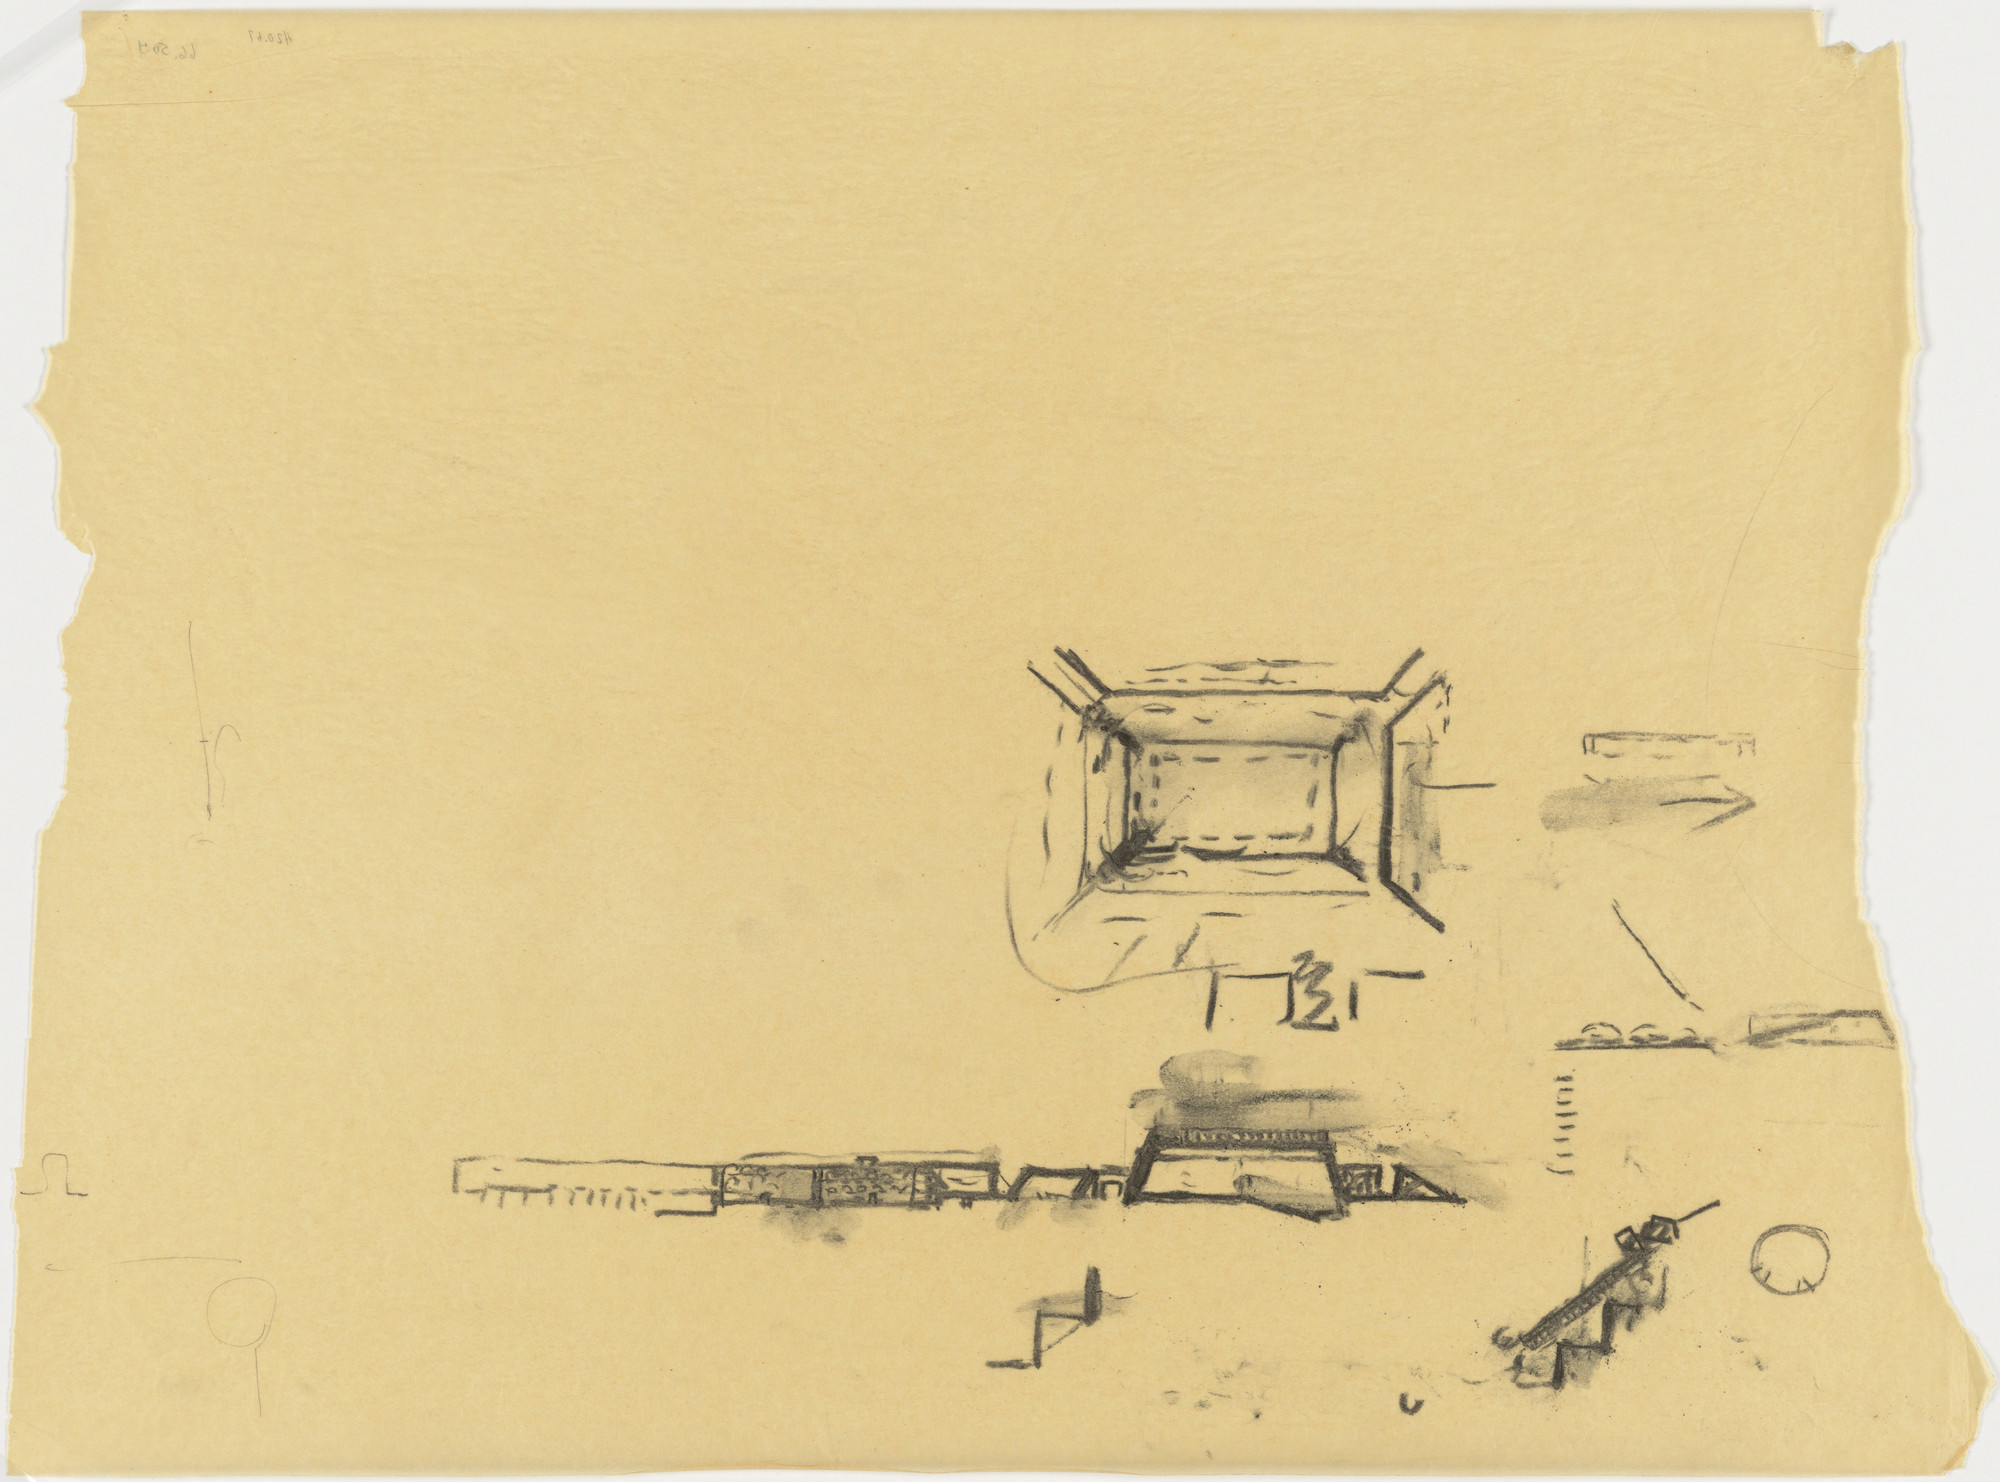 Louis I. Kahn. Indian Institute of Management, Ahmedabad, India, Plan and elevation sketches of classroom building. 1963